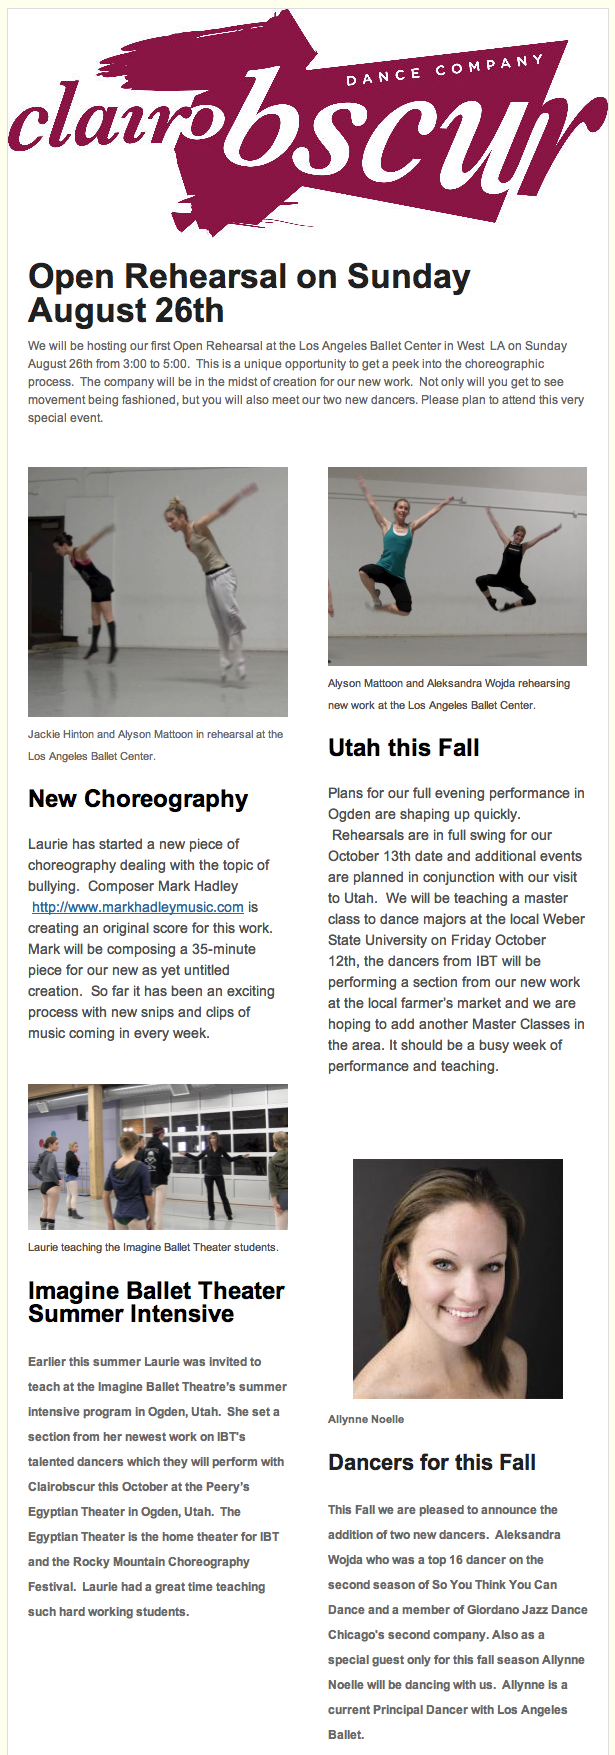 Clairobscur Dance Company News Letter